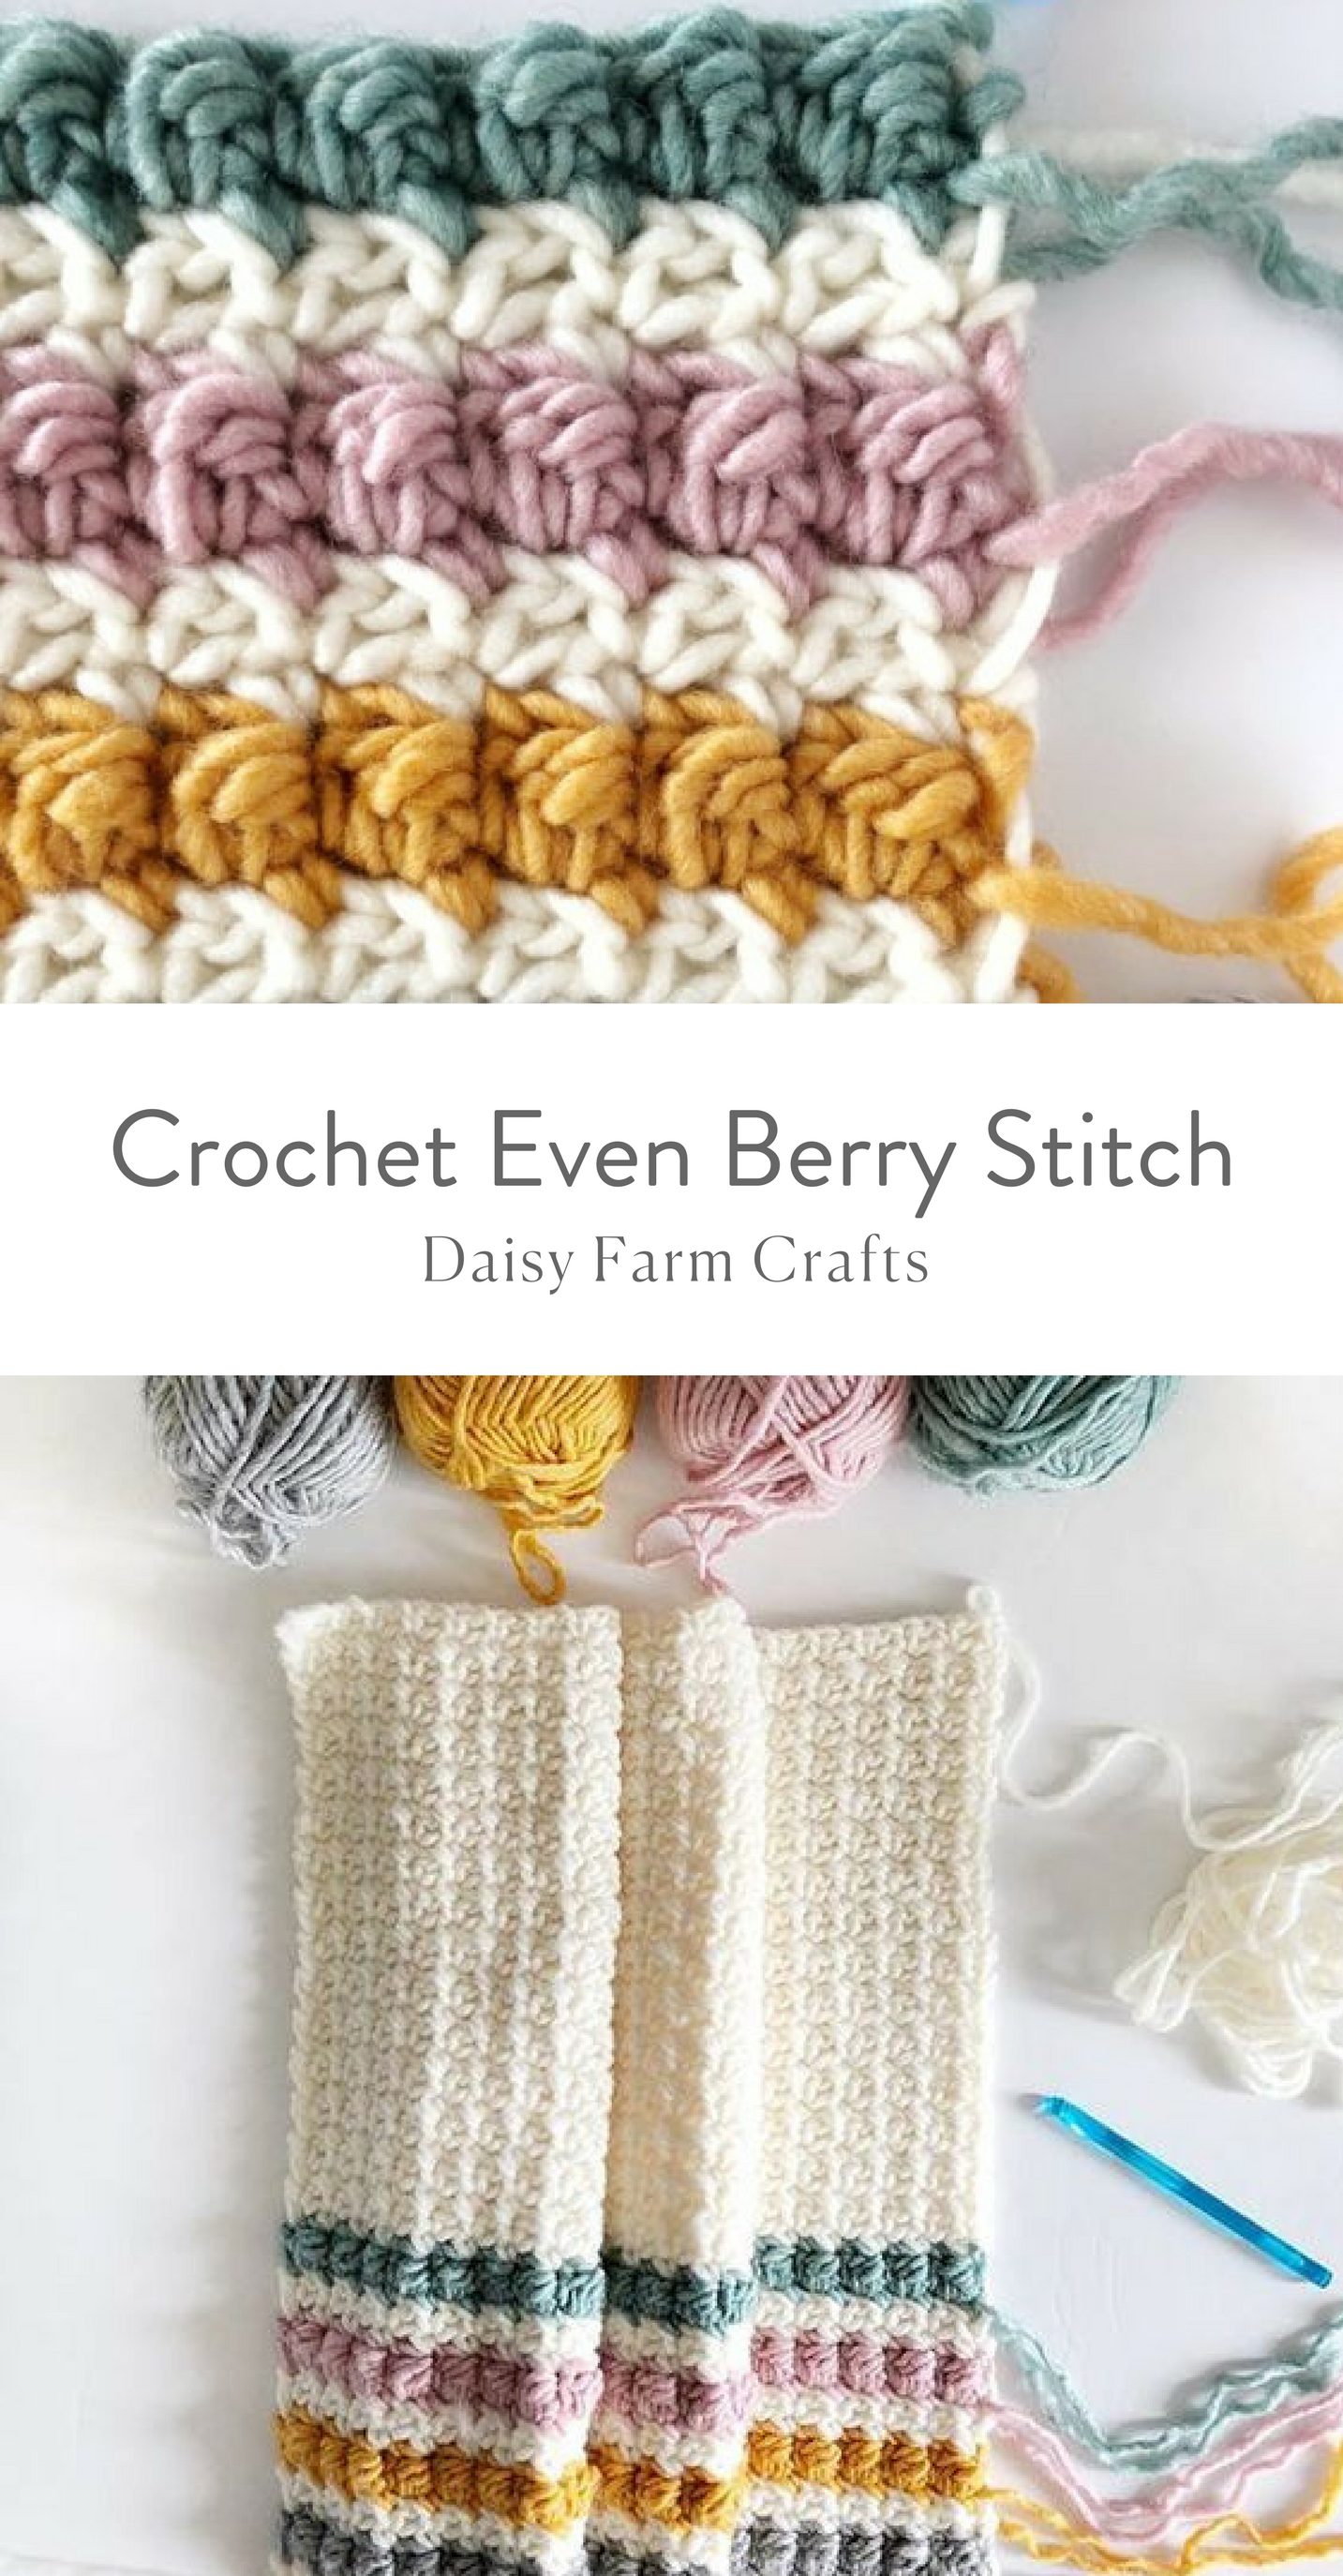 How to Crochet the Even Berry Stitch | Crochet Stitches | Pinterest ...